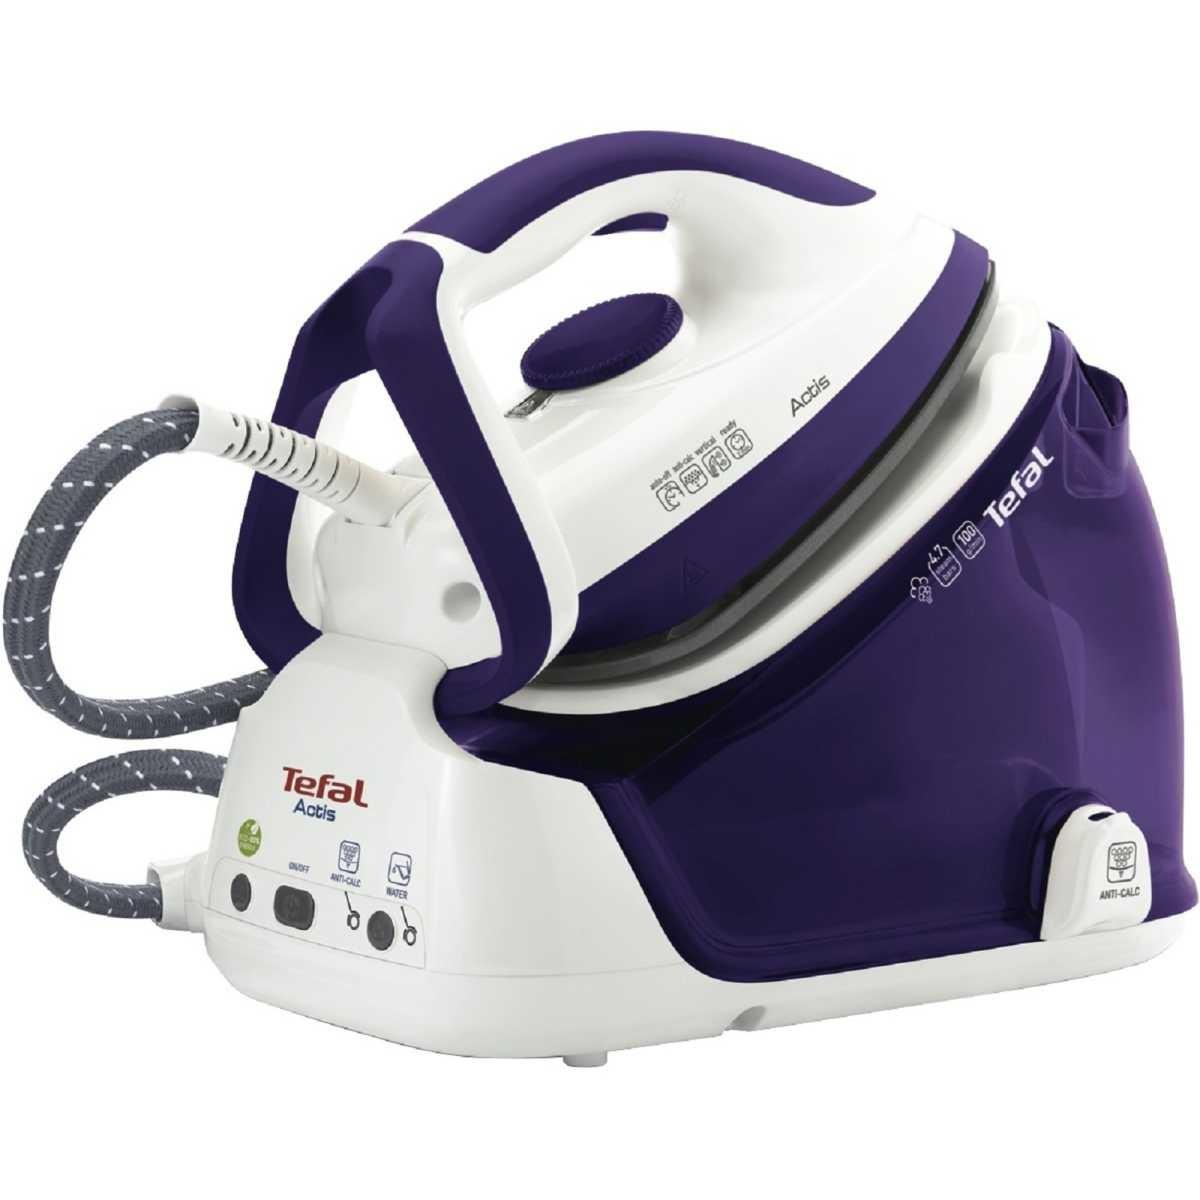 Tefal Actis Steam Generator Iron – GV6340